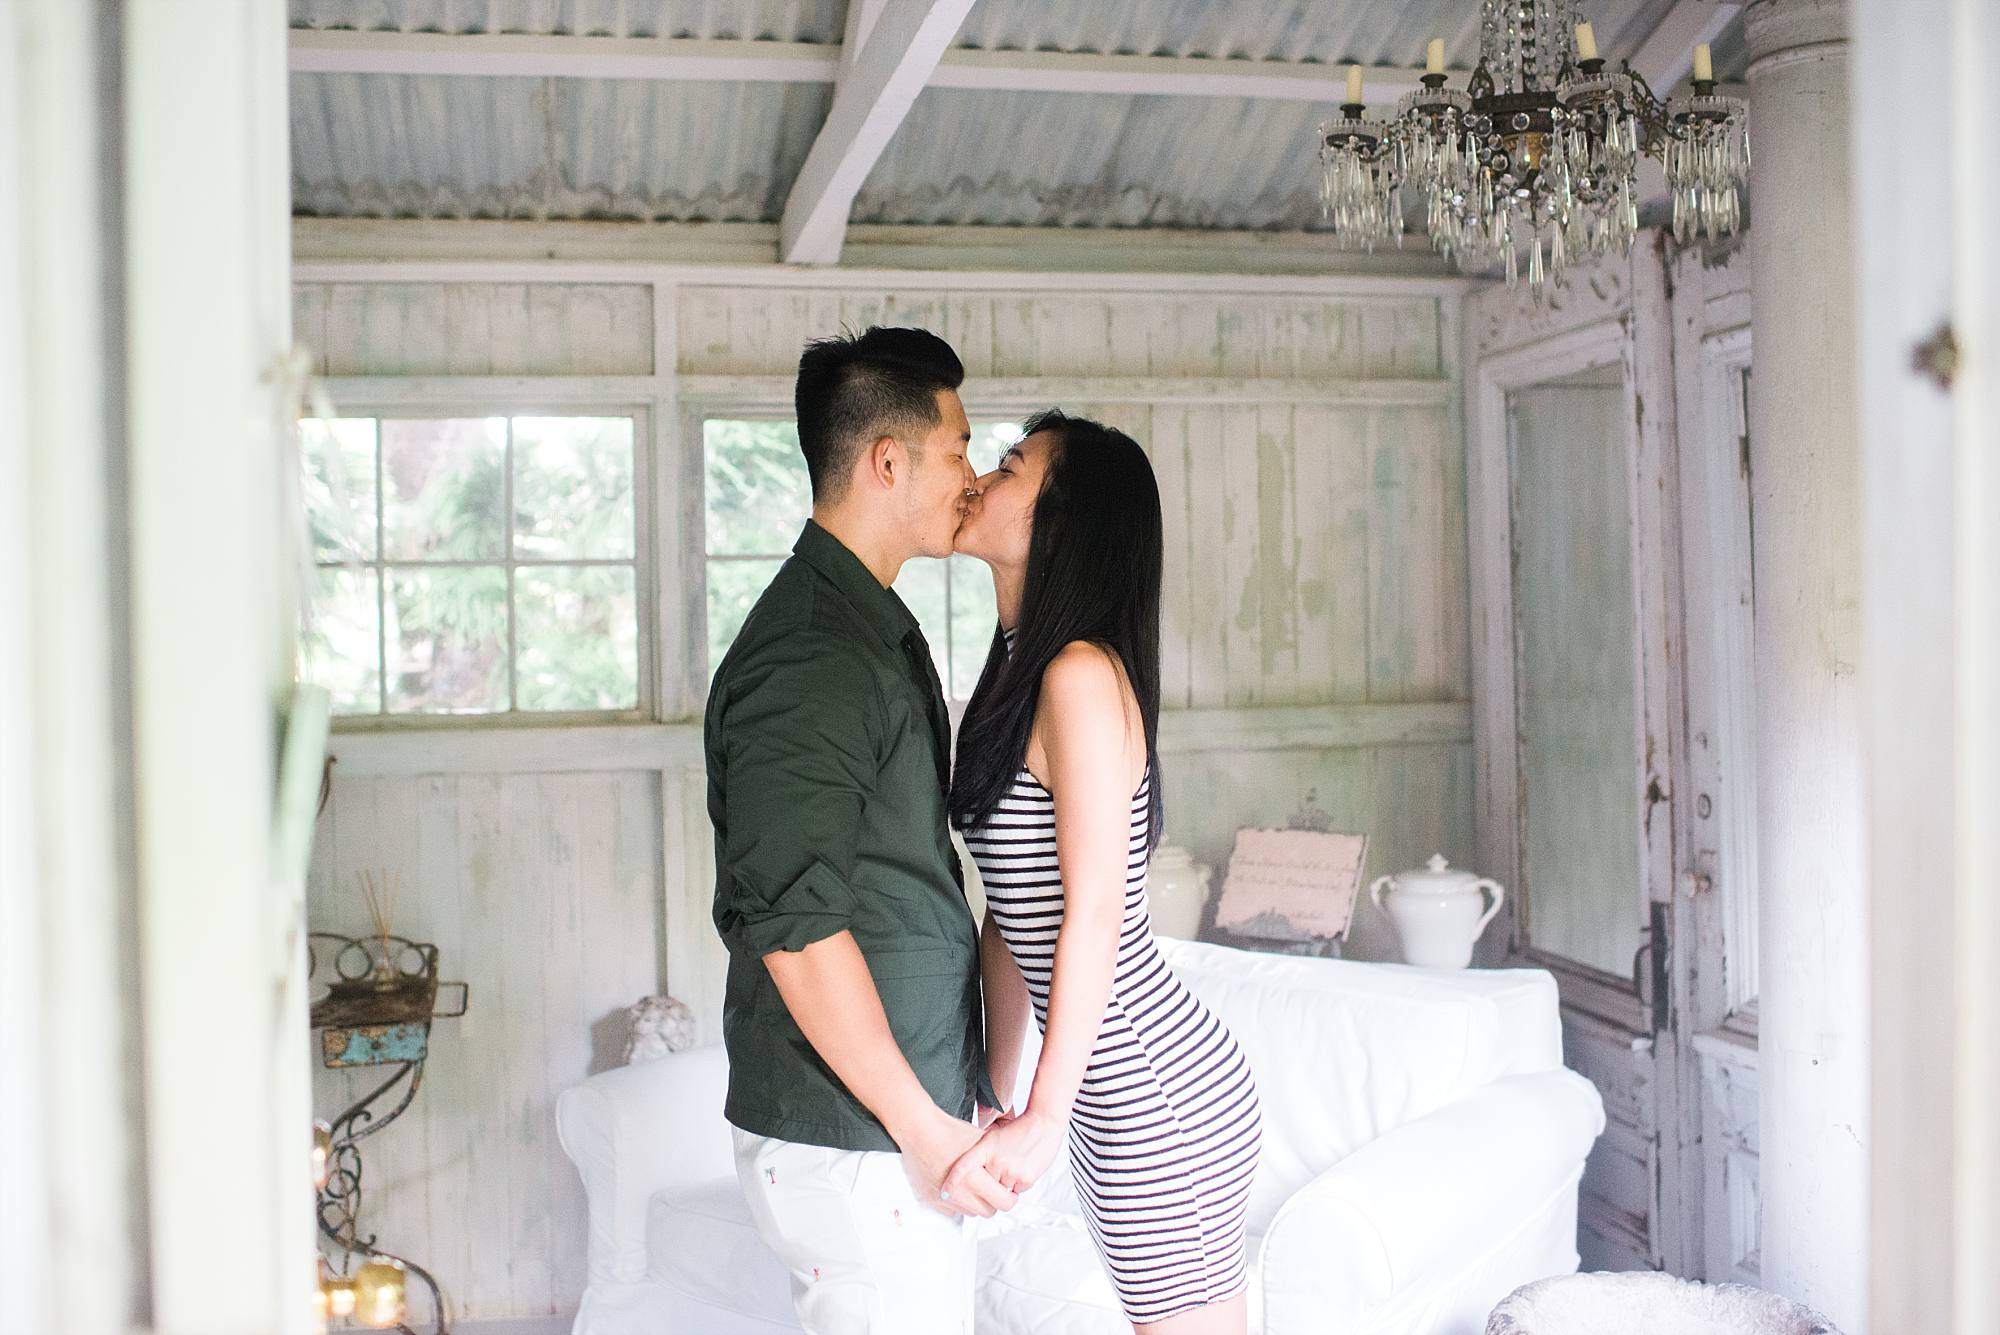 a sweet kiss between new fiances in a rustic white room